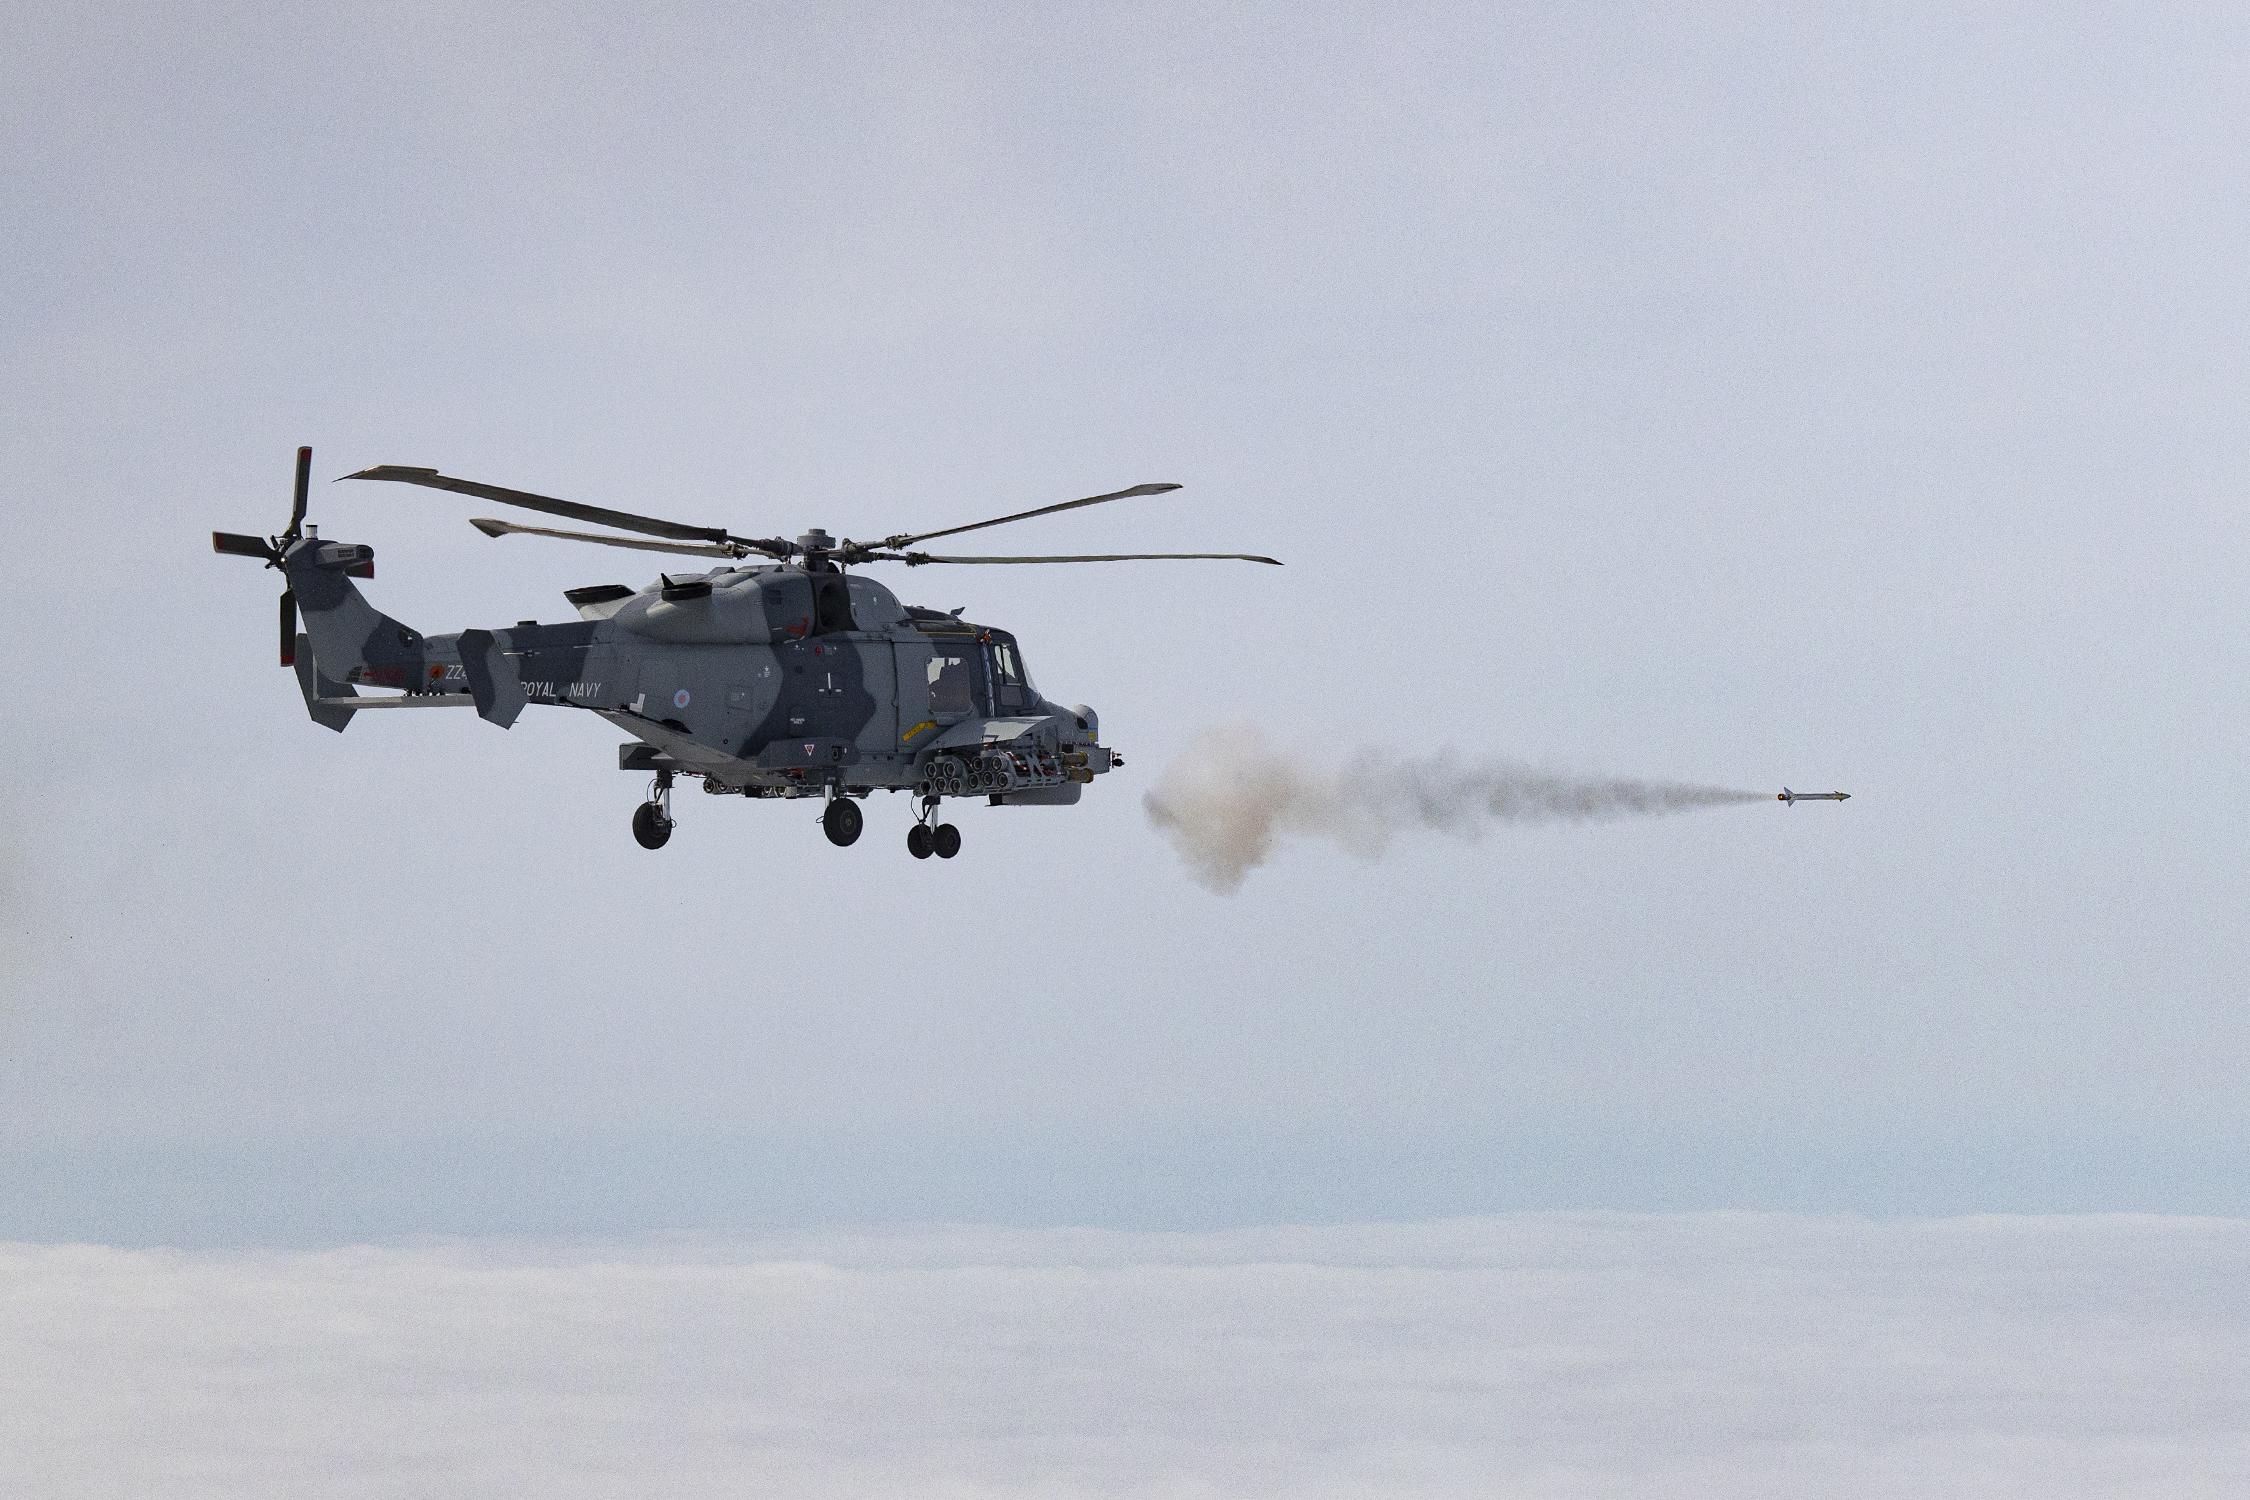 Royal Navy's Wildcat helicopters tested new Martlet missile